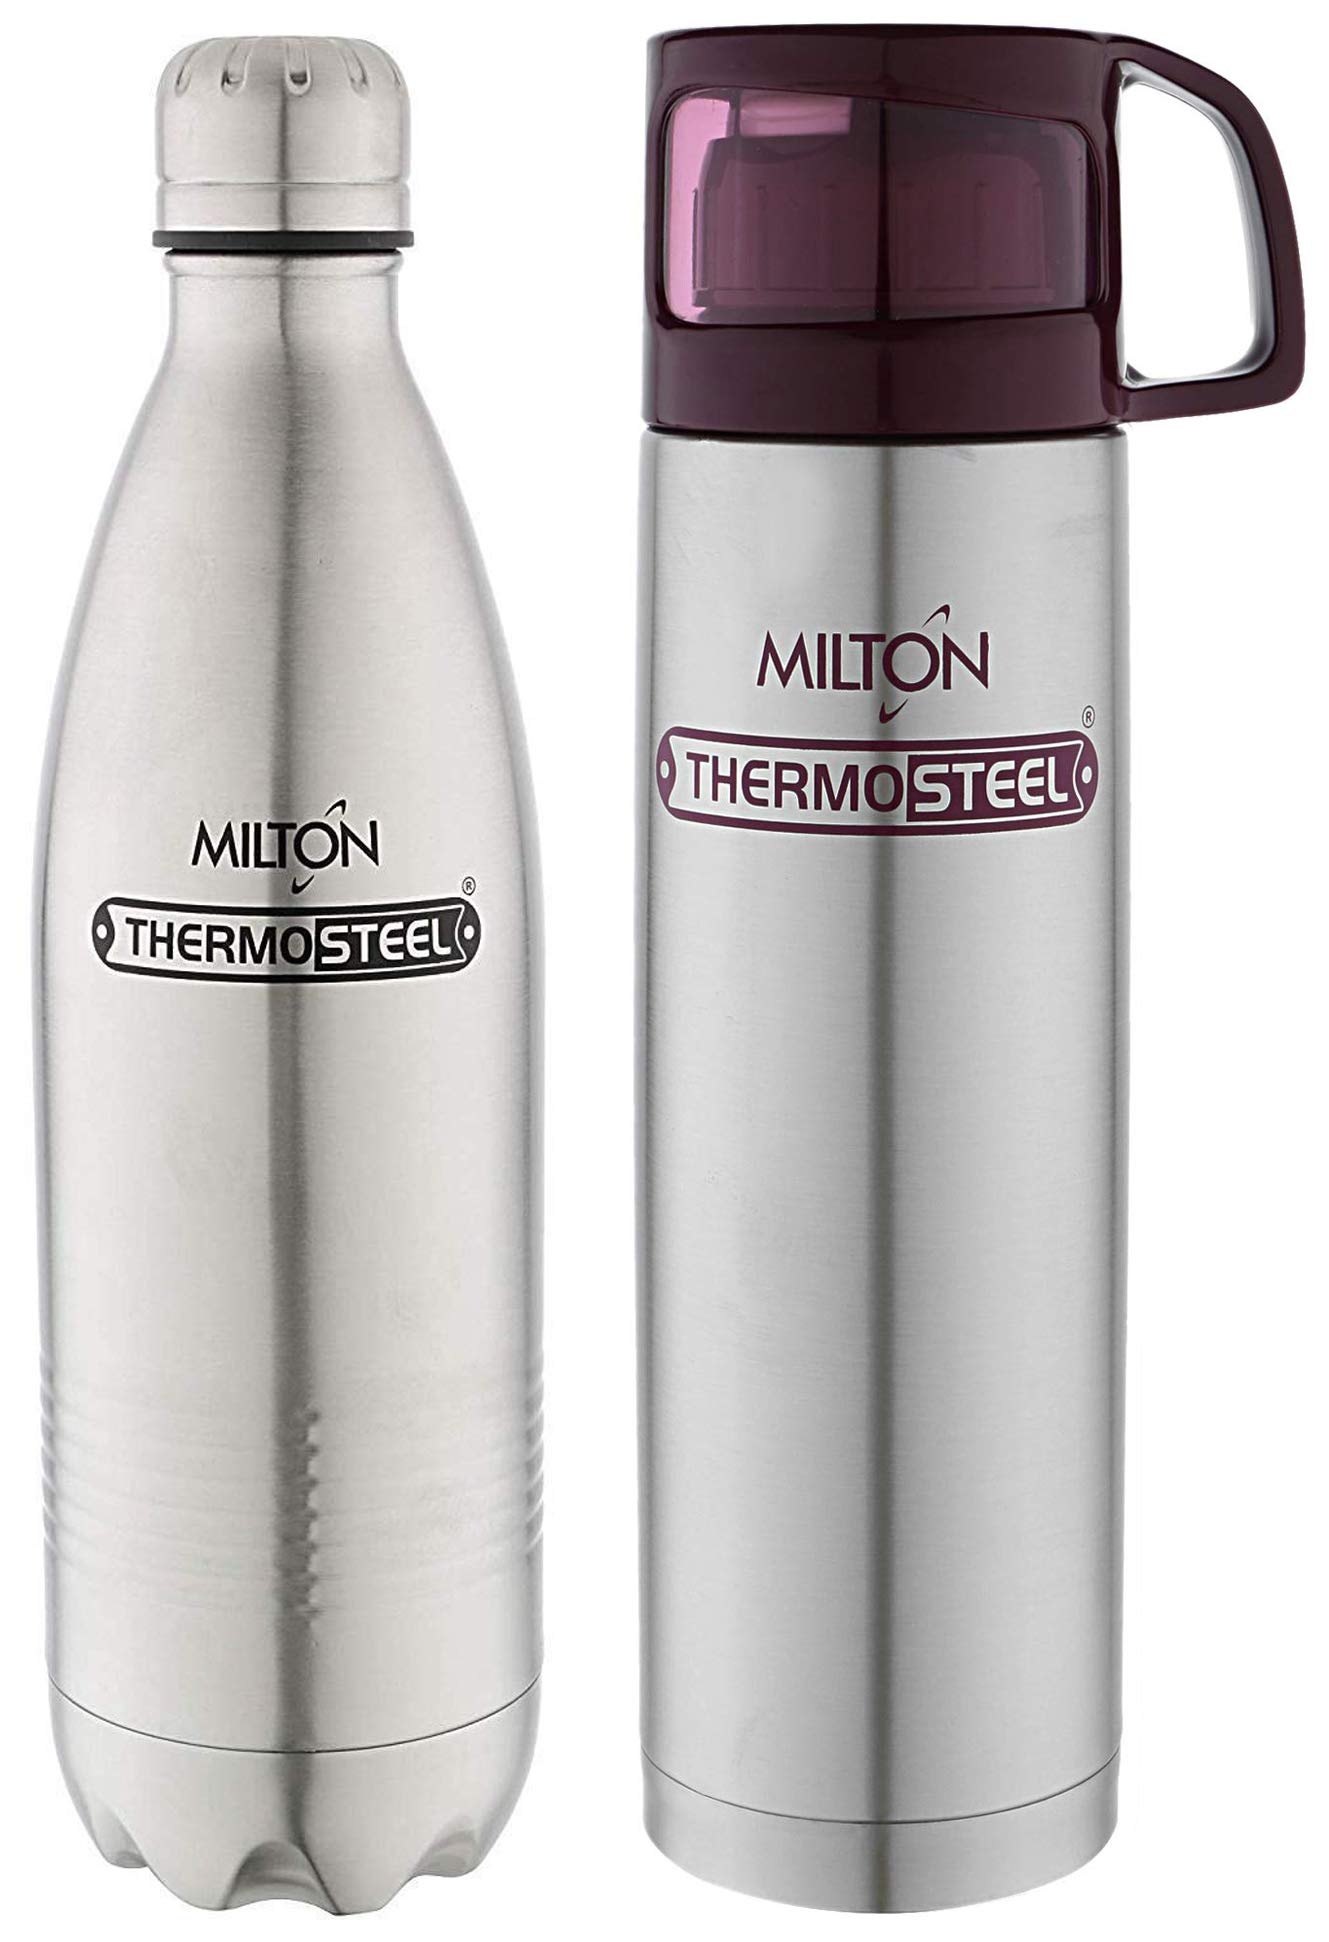 Milton Glassy Flask 1000ml Vaccum Flasks - Purple & Thermosteel Duo Deluxe-1000 Bottle Style Vacuum Flask, 1 Litre, Silver Combo